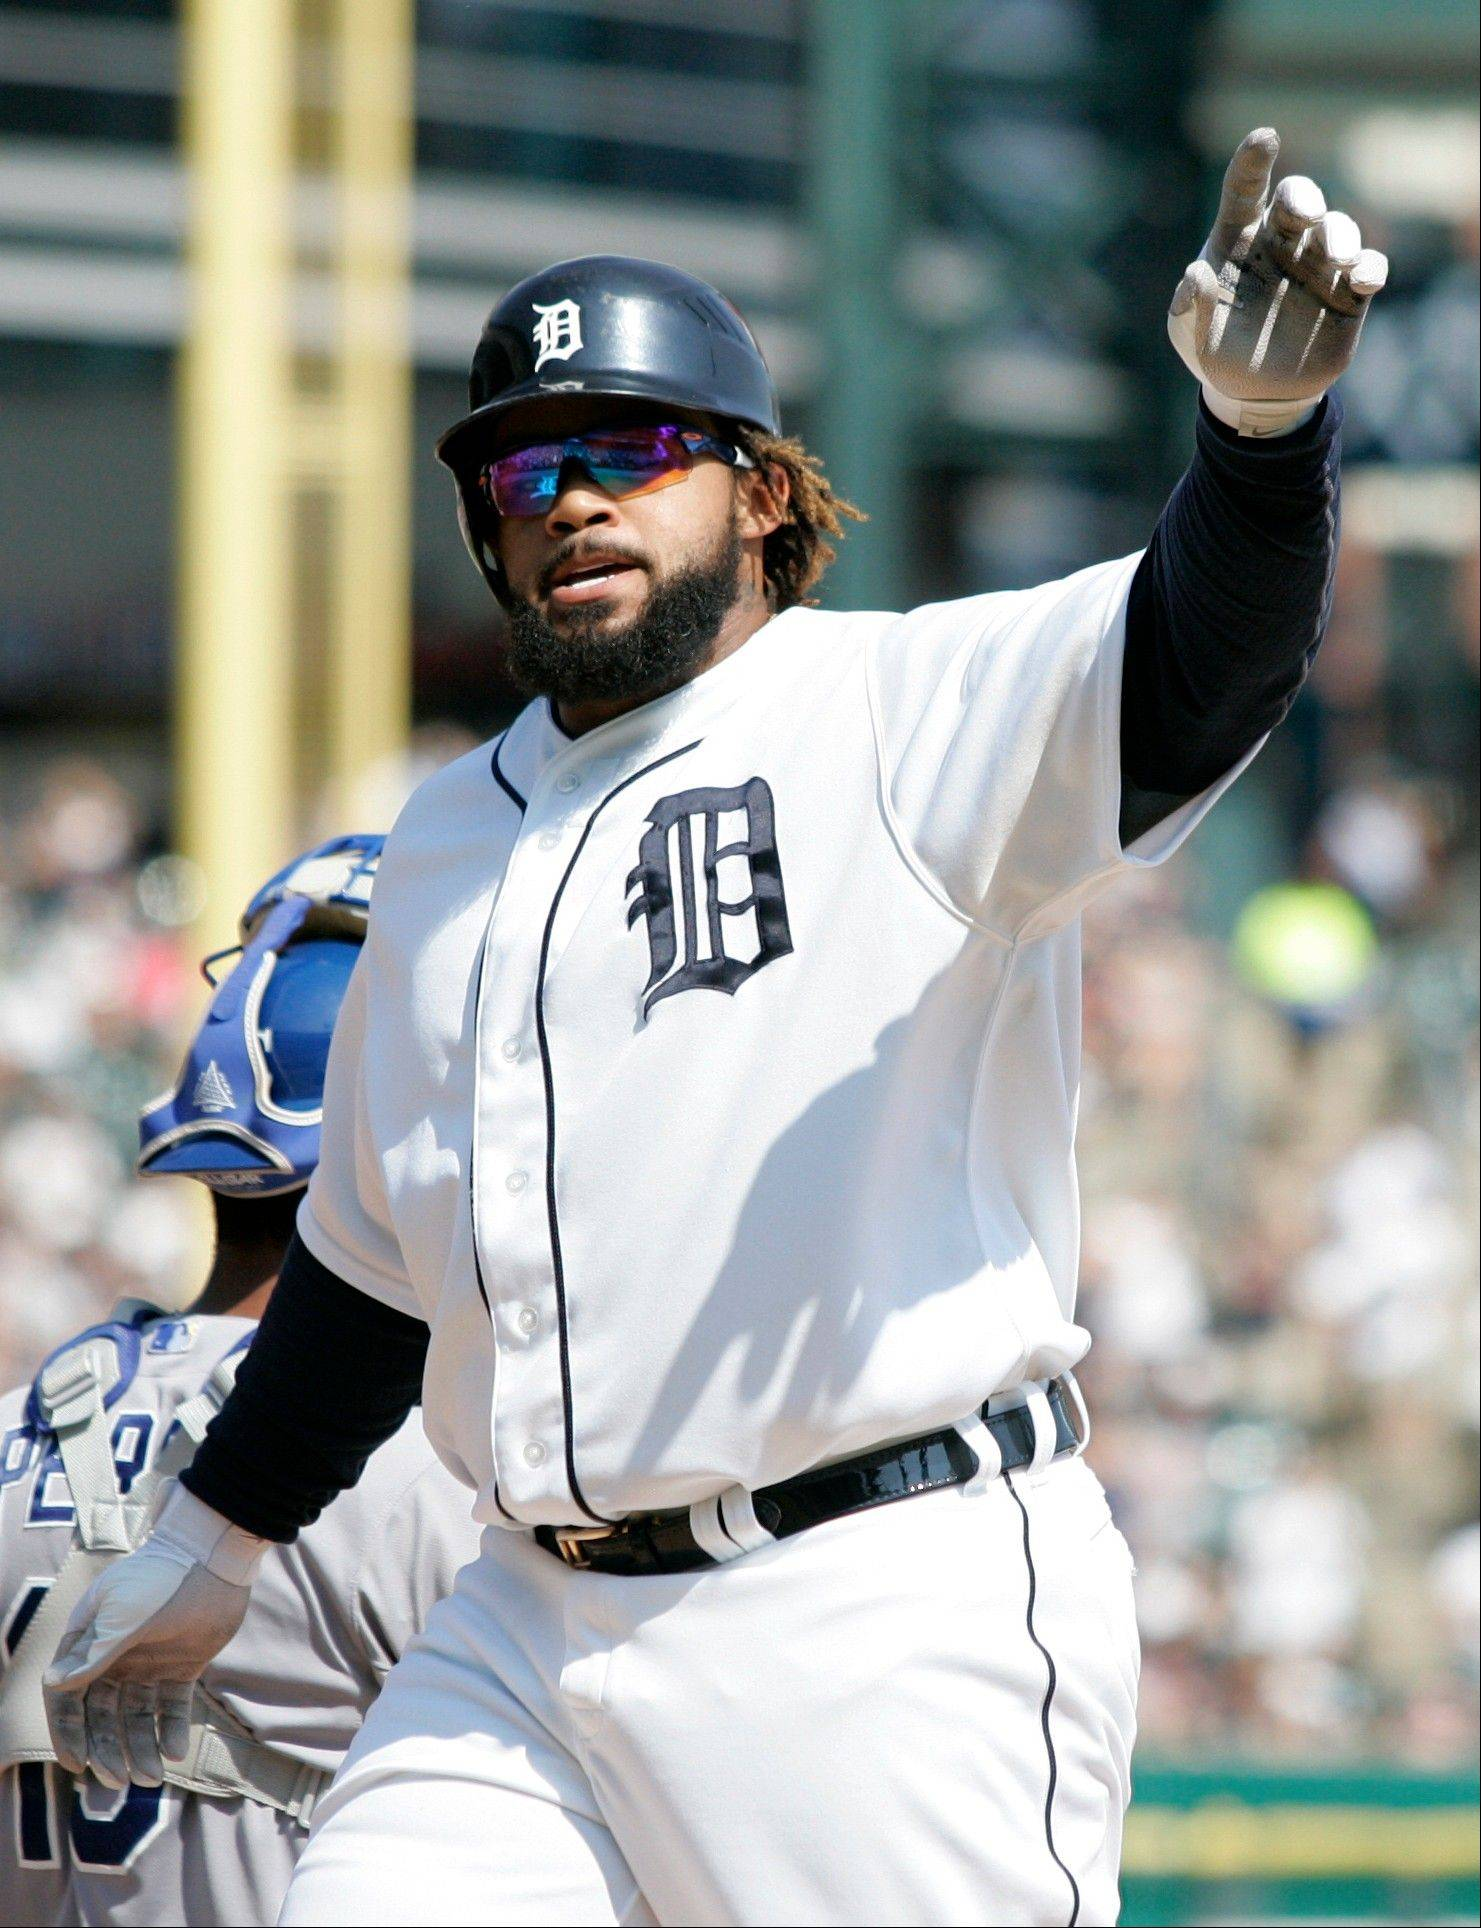 Detroit Tigers first baseman Prince Fielder acknowledges the crowd after hitting a two-run home run against the Kansas City Royals Saturday during the first inning in Detroit. The Tigers defeated the Royals 8-7.